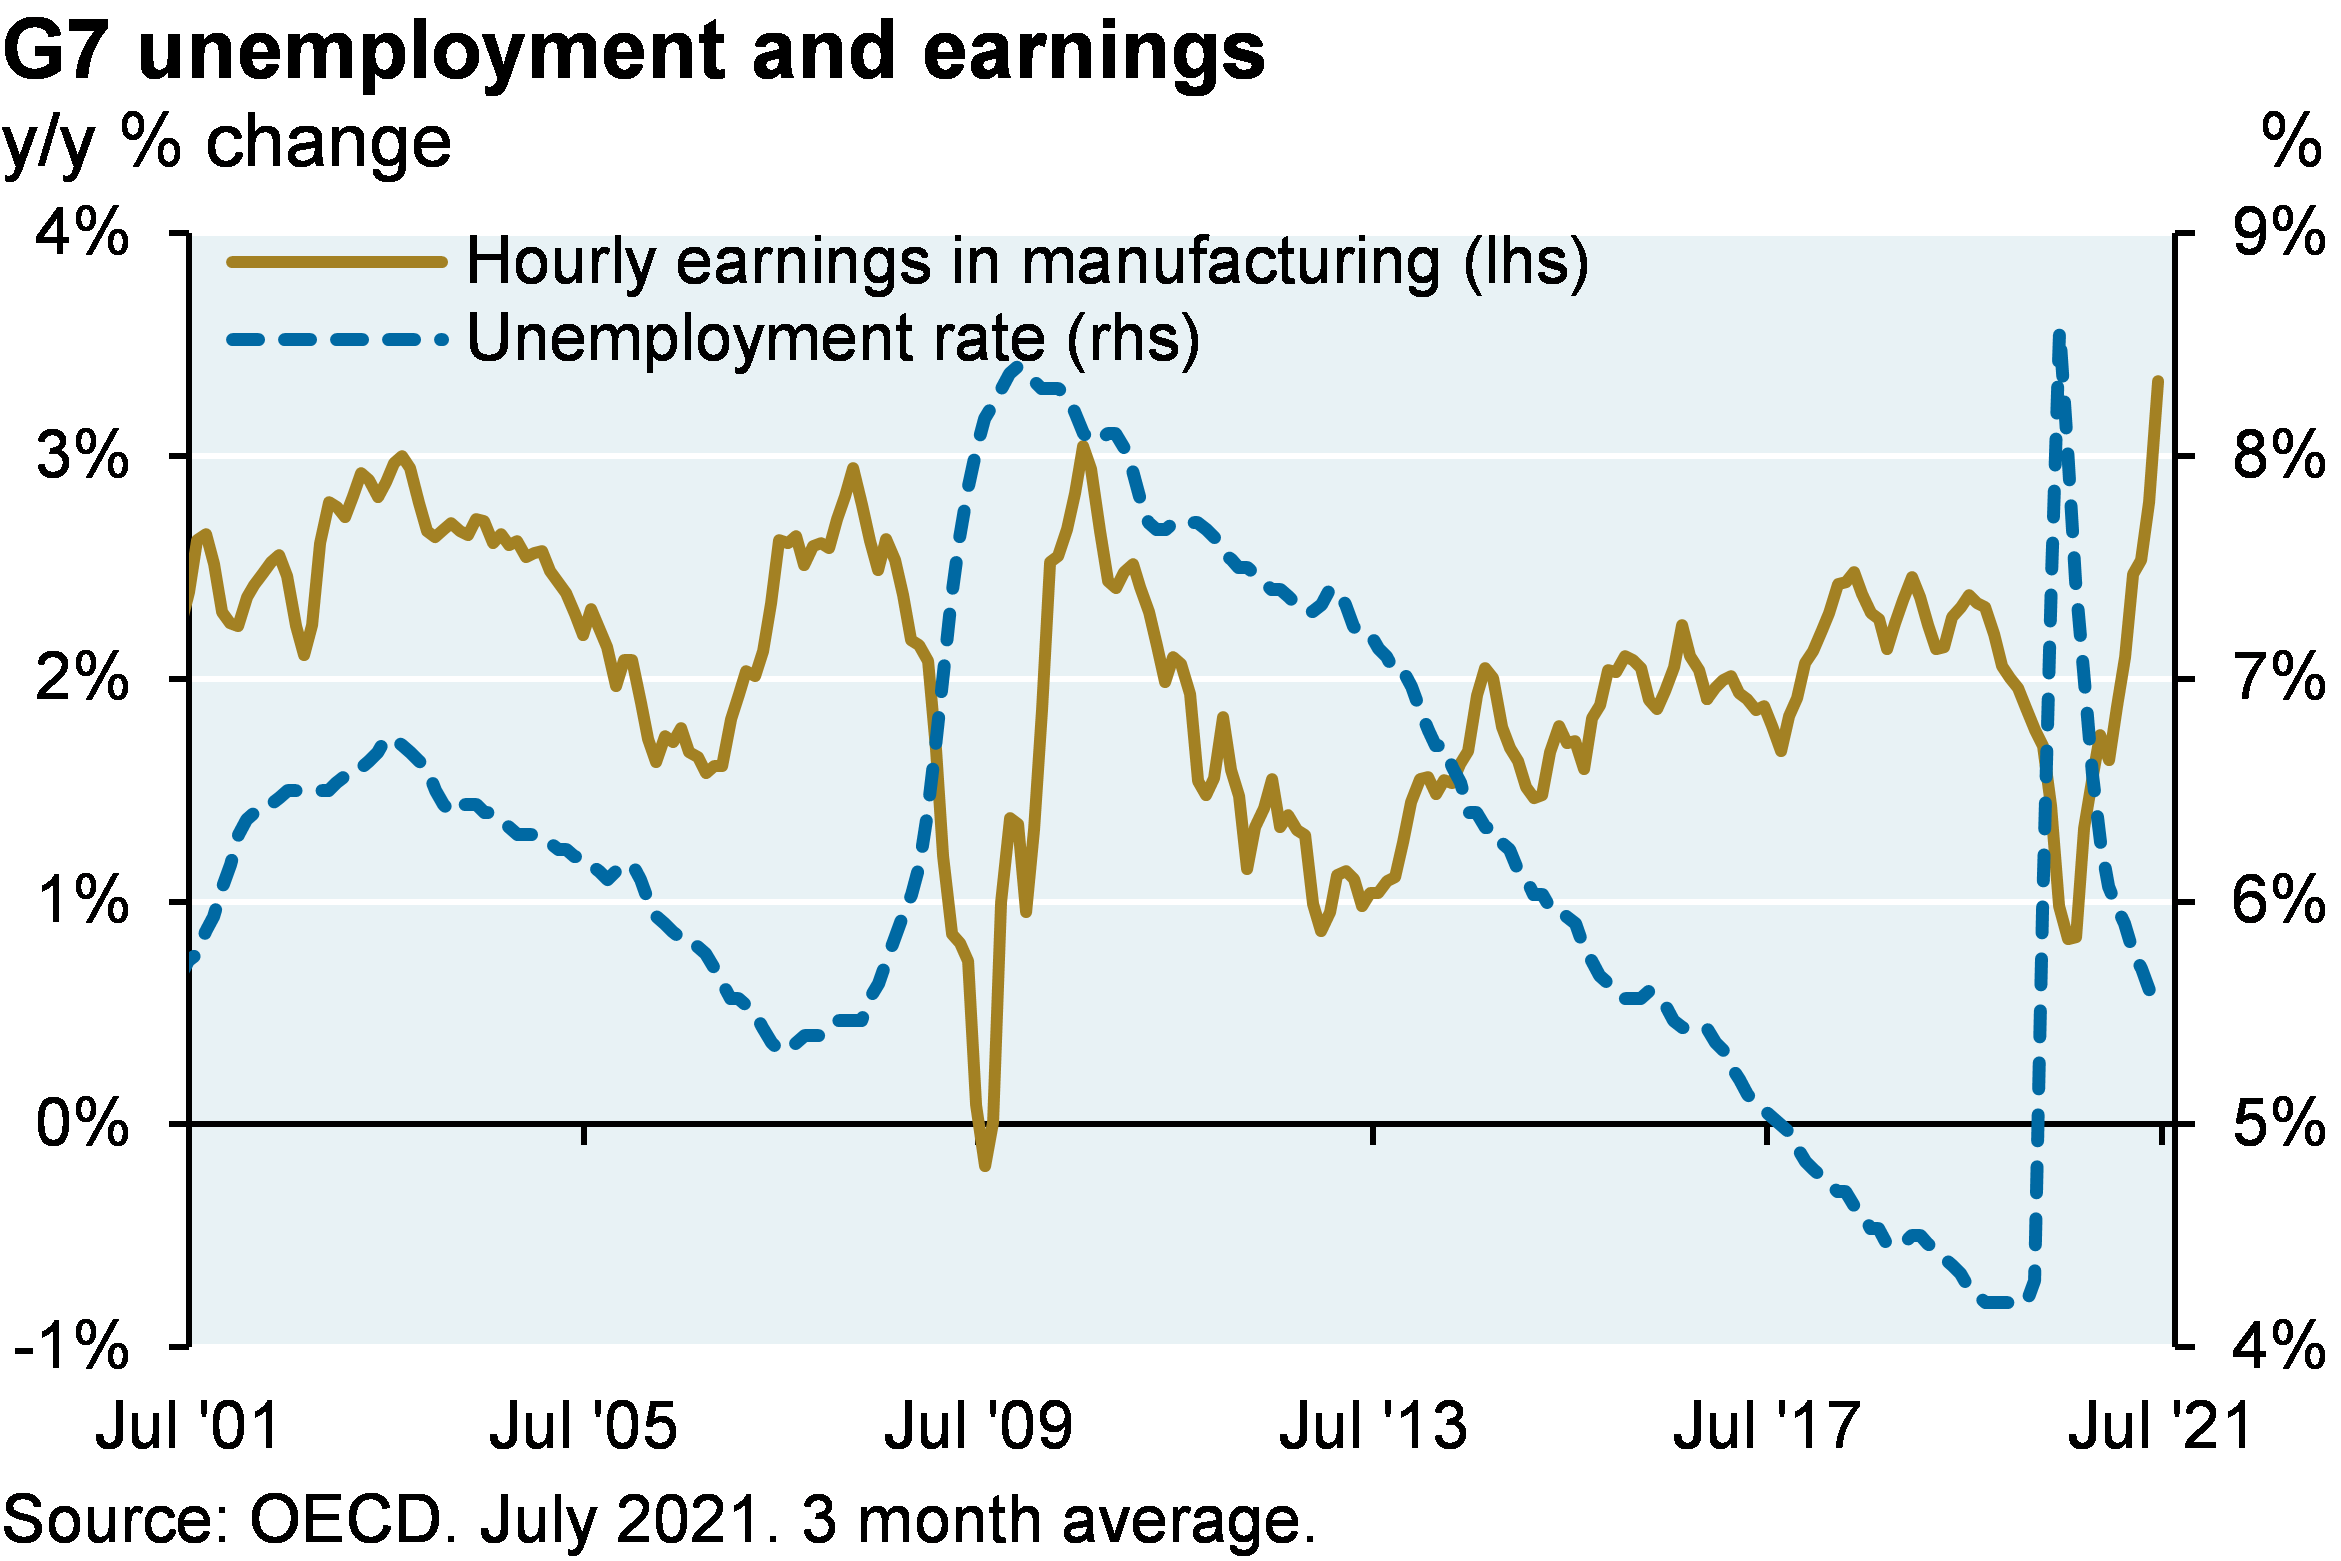 Line chart which plots manufacturing wages versus the unemployment rate in the G7. The chart shows that manufacturing wages are rising at a very high level (~3% since last year) given the prevailing level of unemployment.